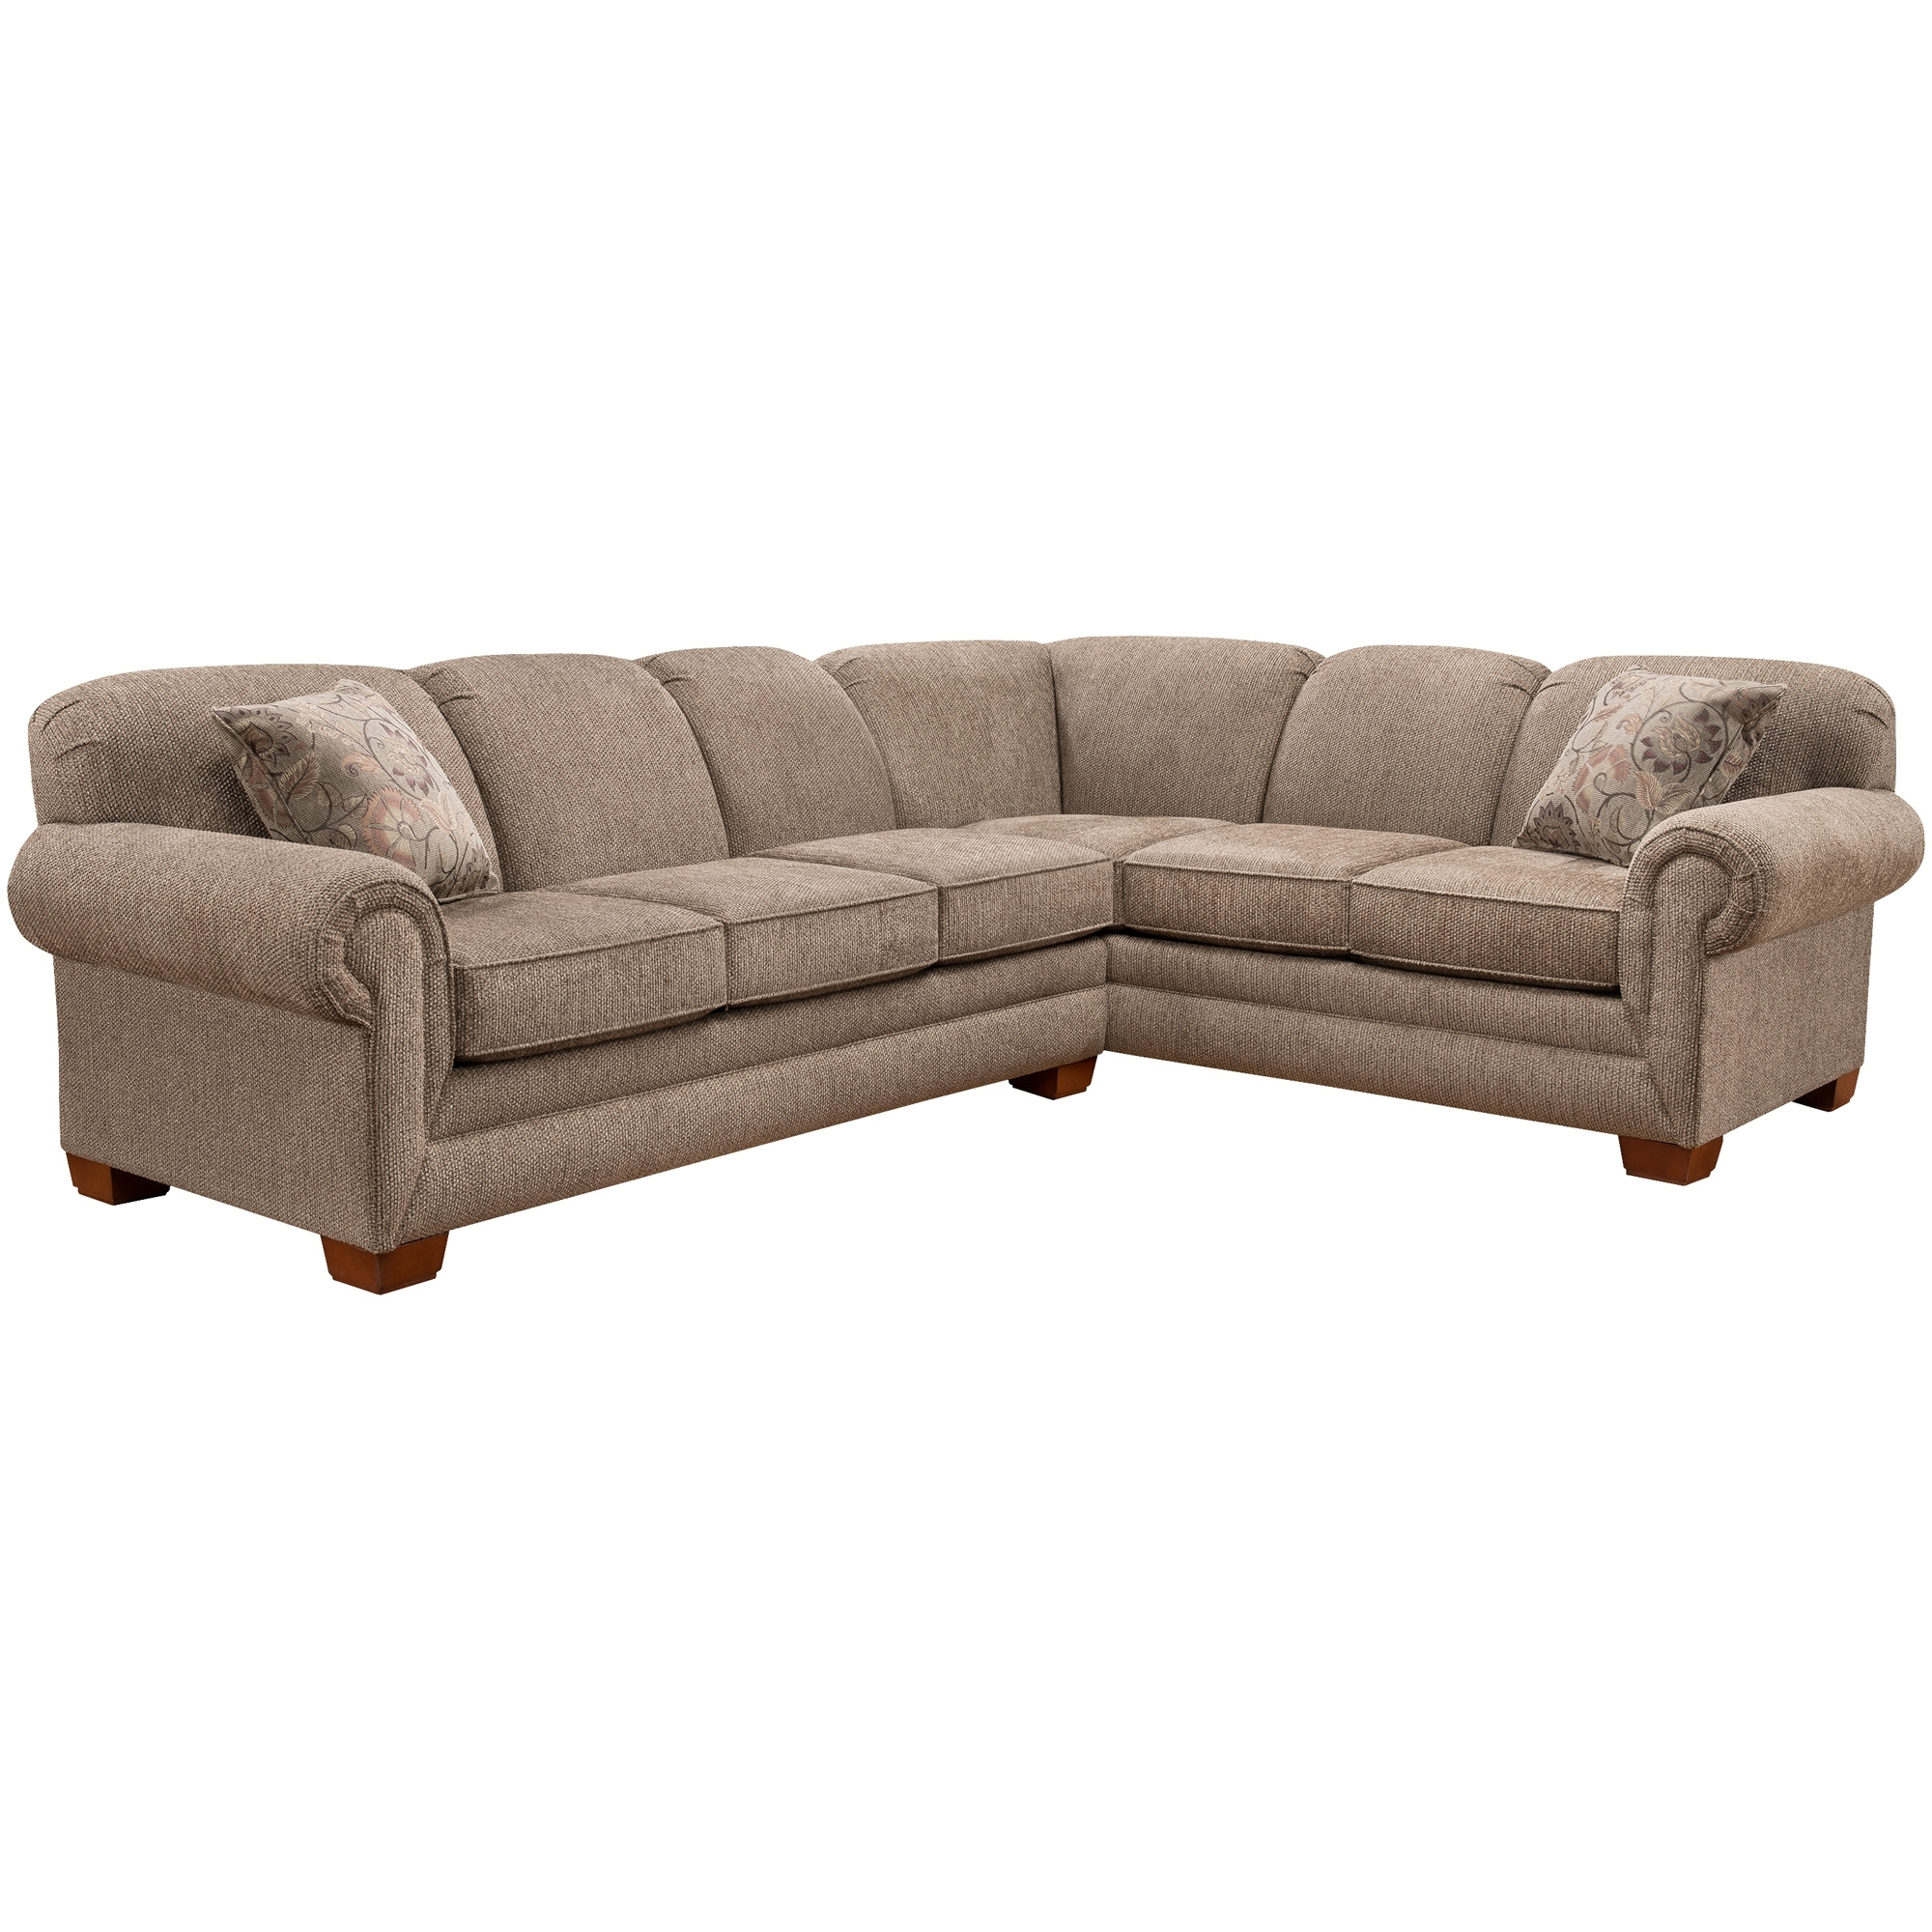 Slumberland Furniture | Tenor 2 Pc Brown Large Sectional With Regard To Harper Foam 3 Piece Sectionals With Raf Chaise (Image 24 of 25)